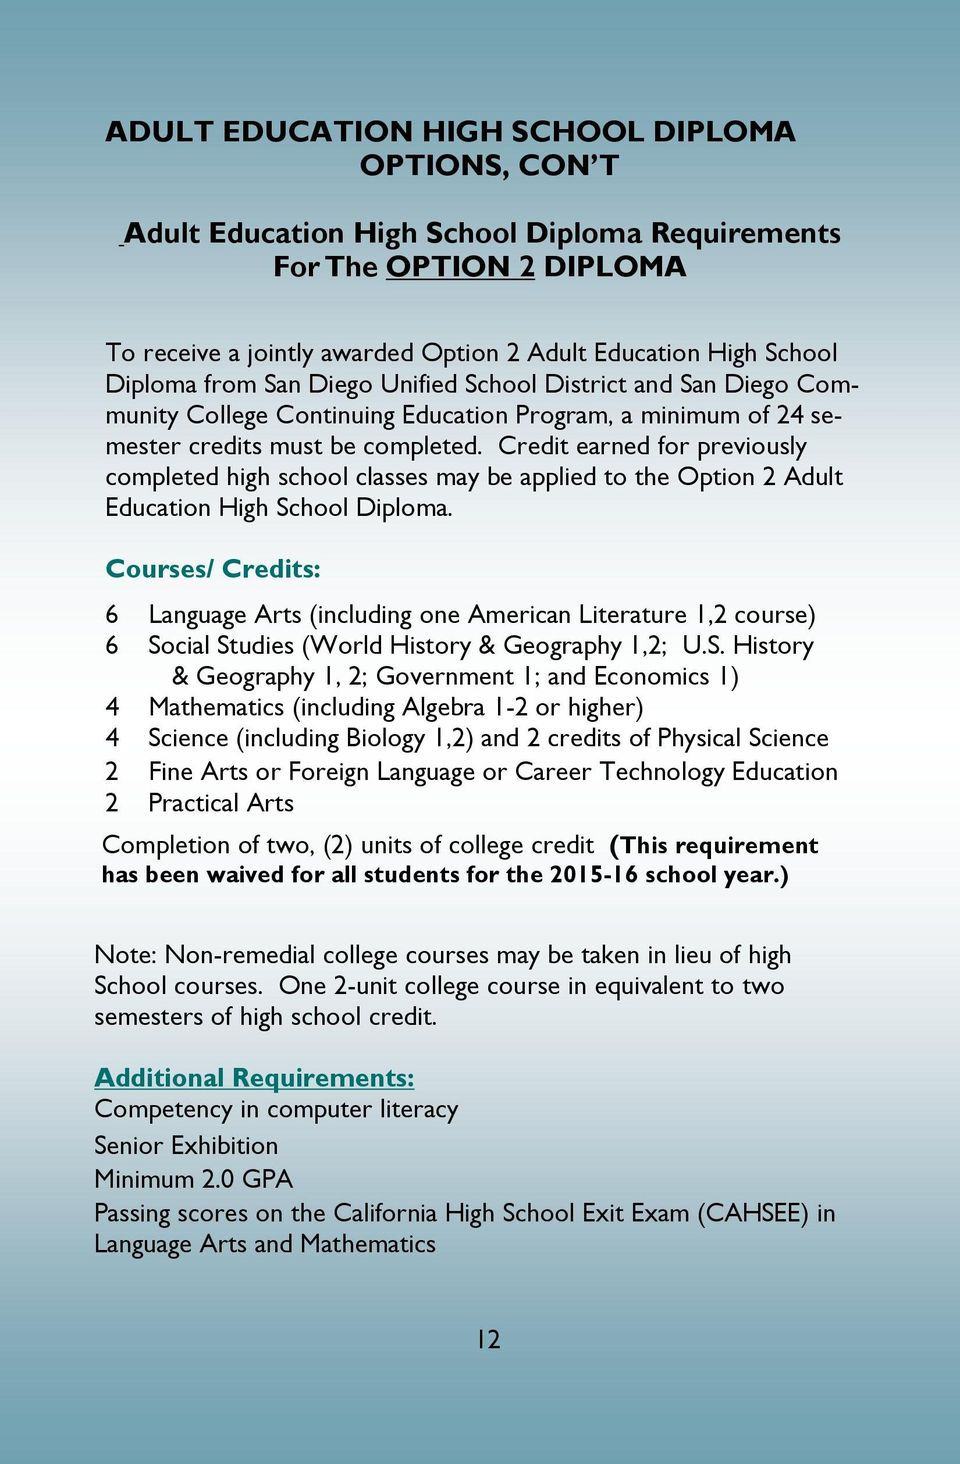 Credit earned for previously completed high school classes may be applied to the Option 2 Adult Education High School Diploma.